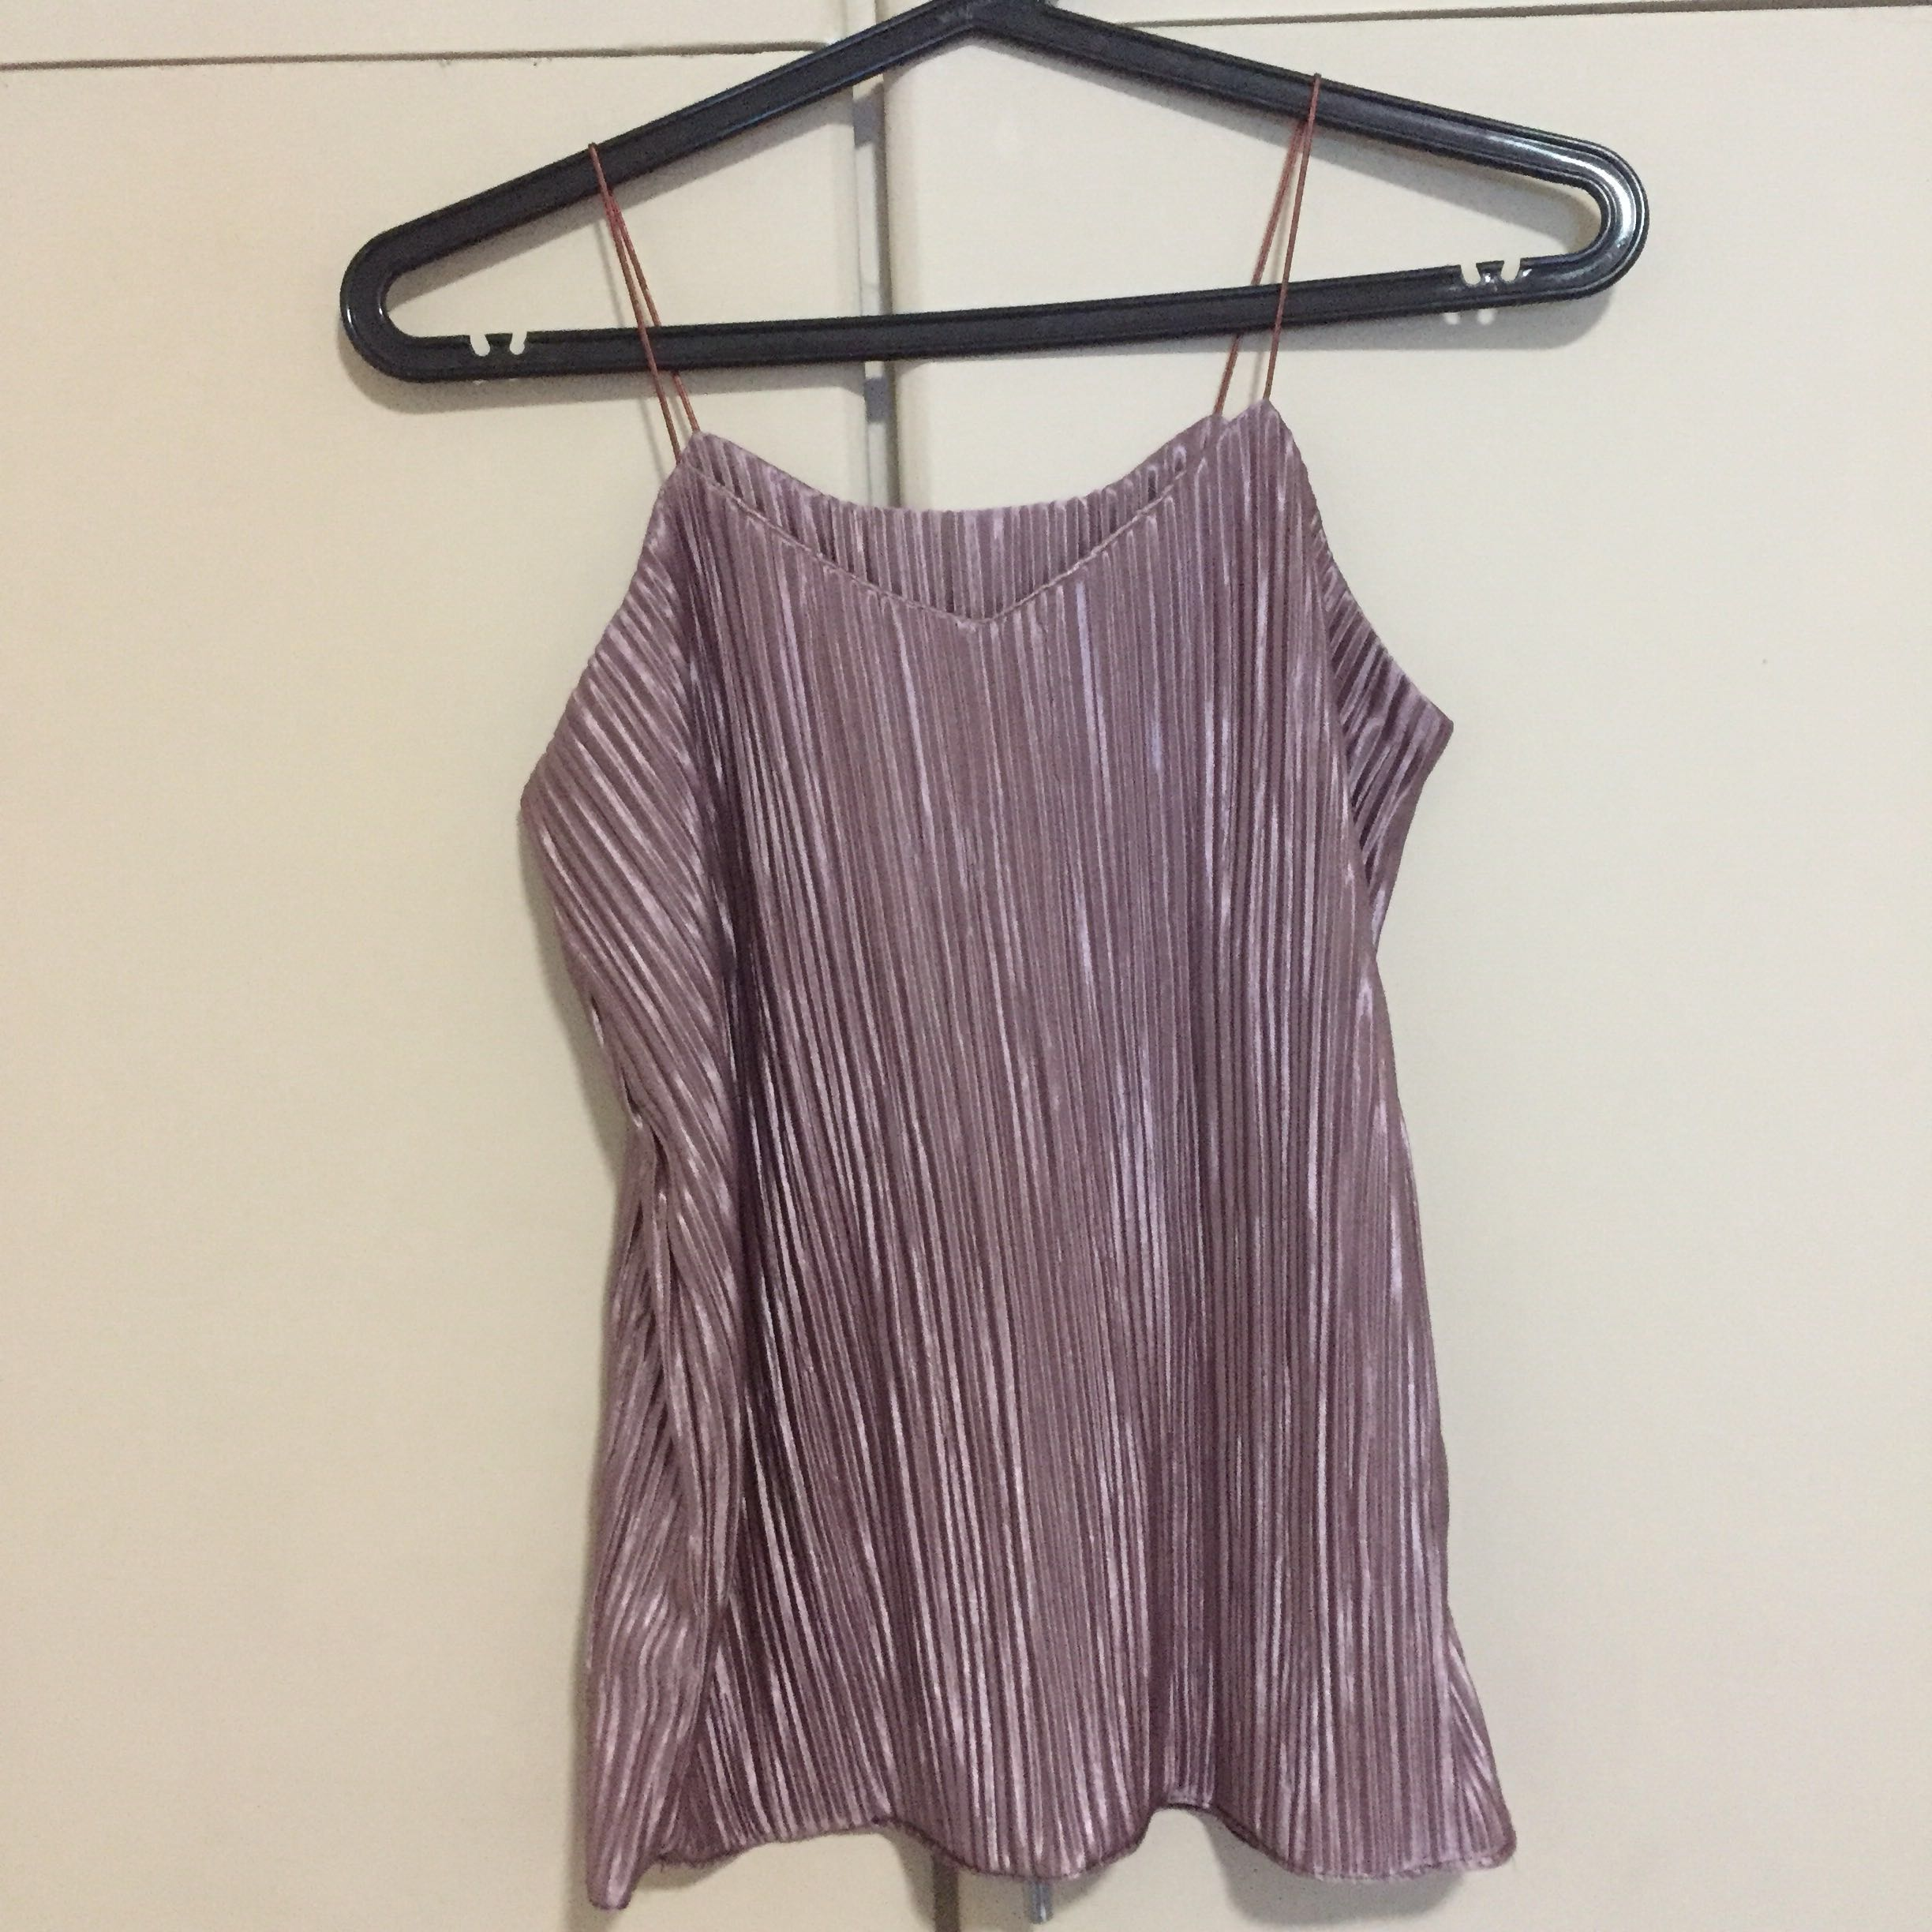 Cami pleated top (Pinkish)